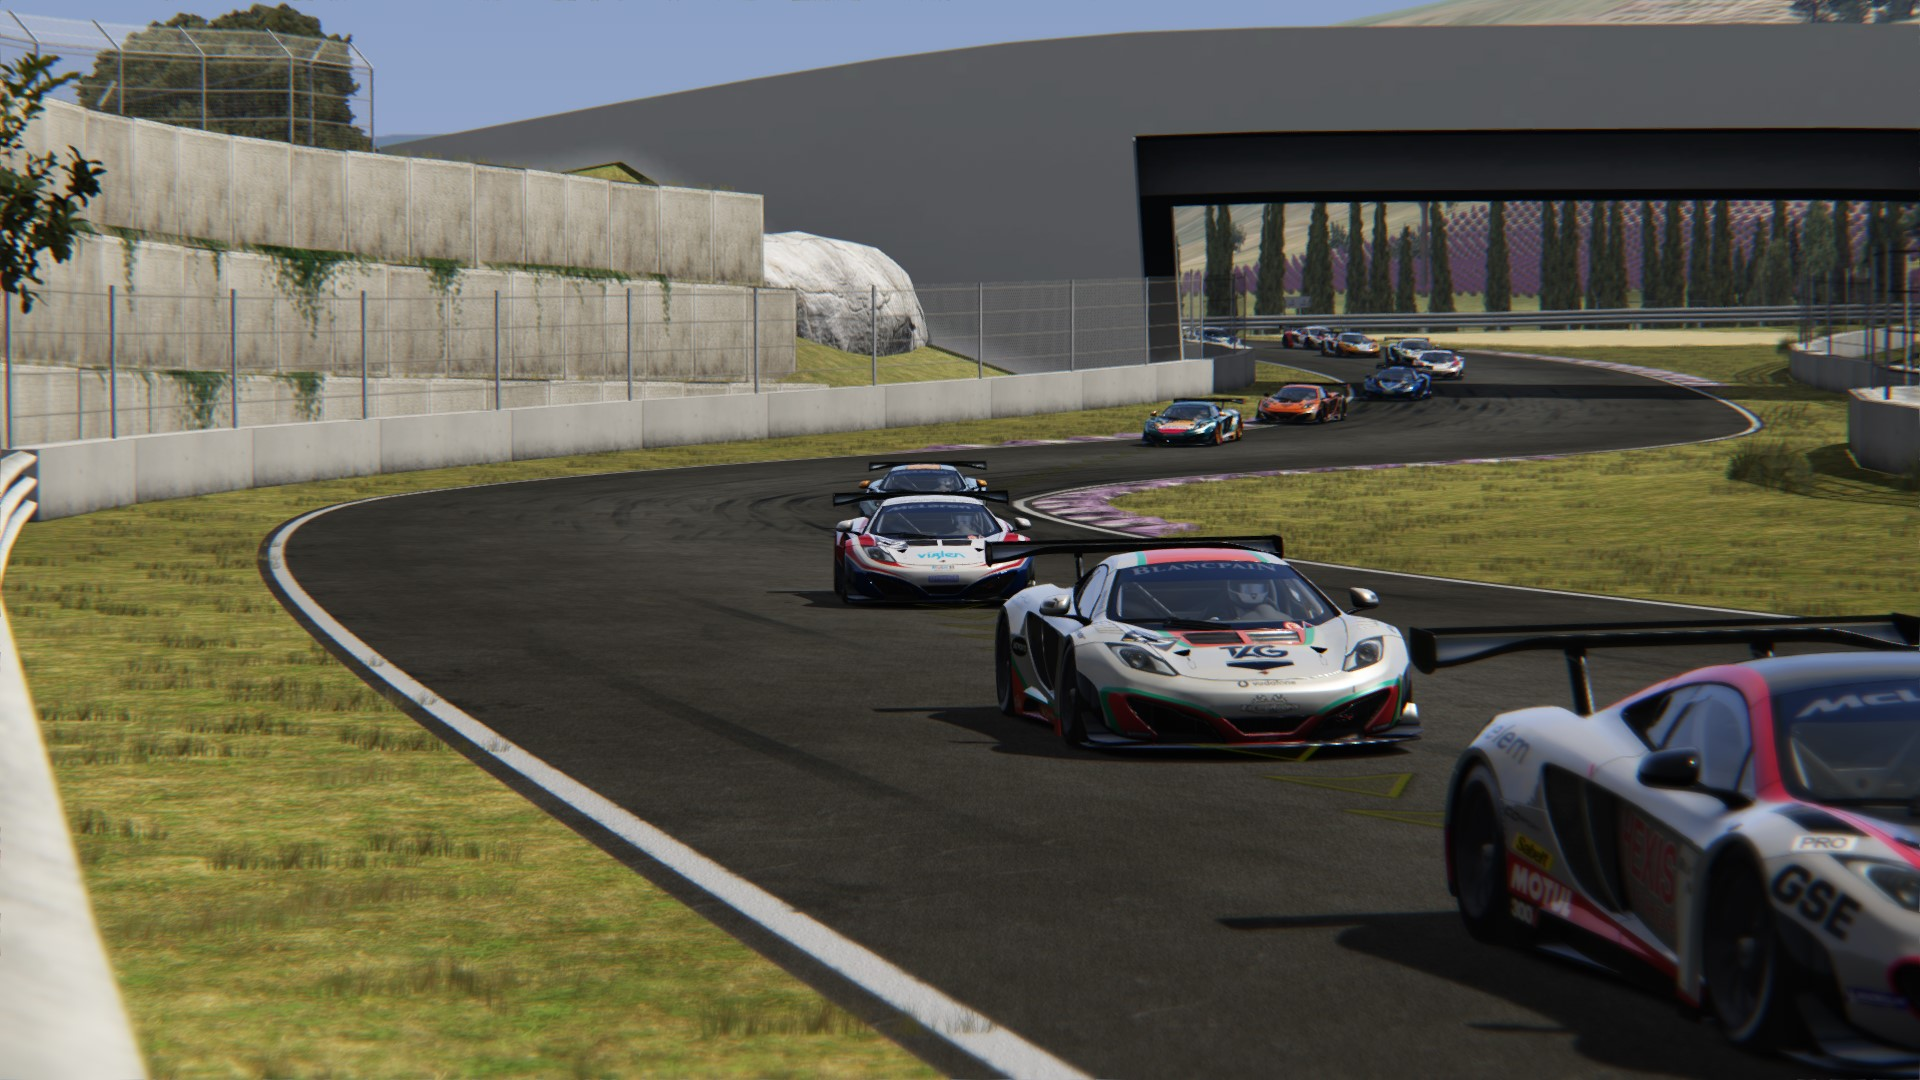 Screenshot_mclaren_mp412c_gt3_toscana_22-5-117-15-23-24.jpg